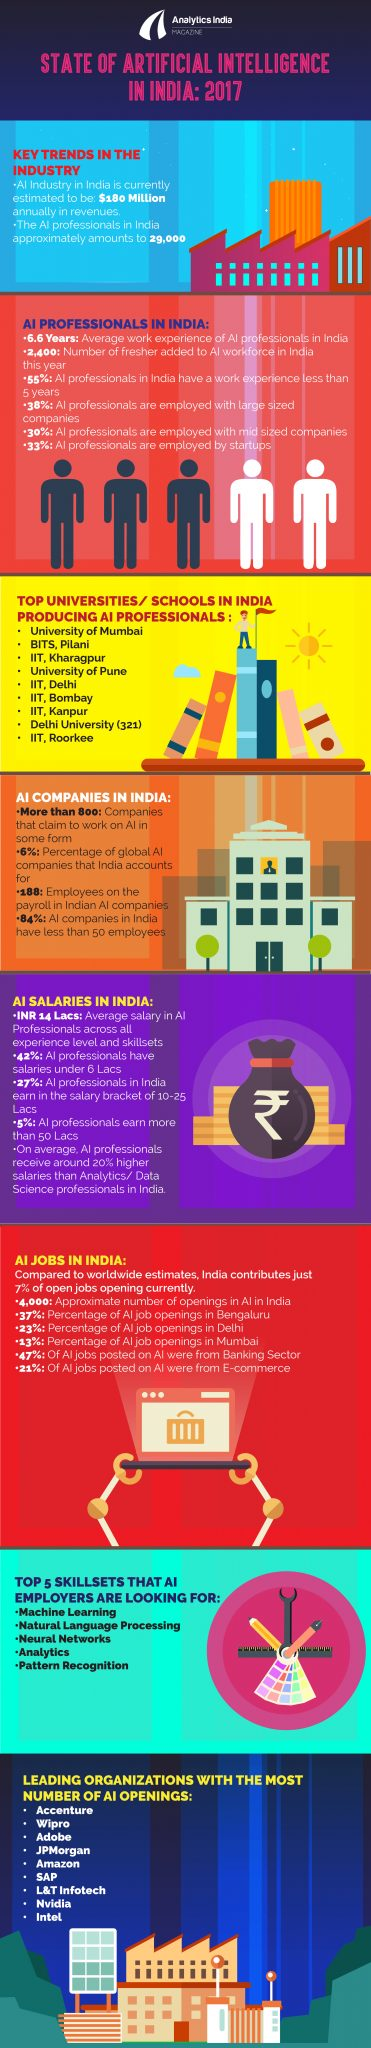 Infographic: State Of Artificial Intelligence In India 2017